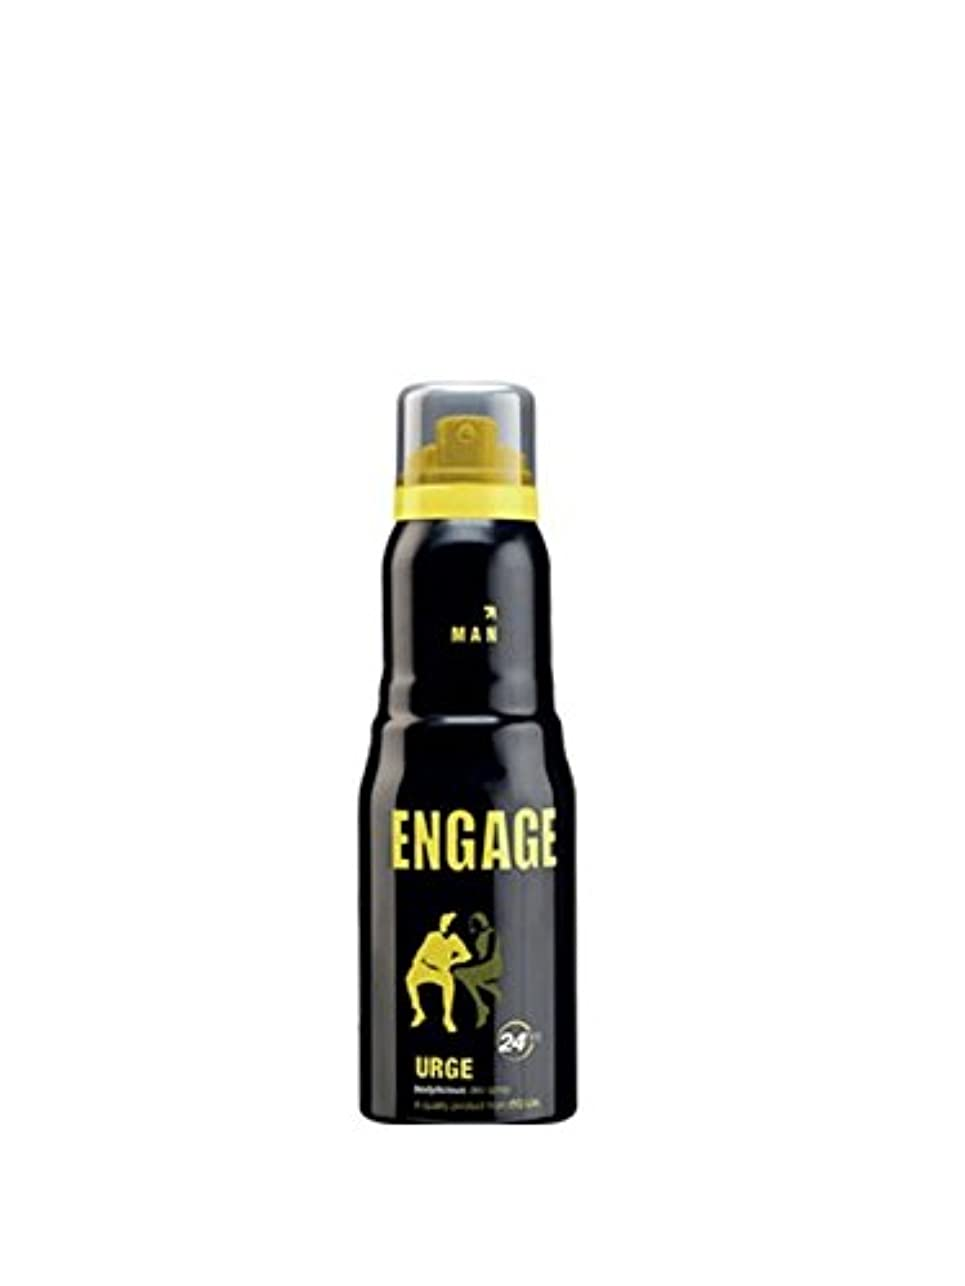 ハードトン必要ないEngage Urge Deodorant For Men, 150ml / 165ml (Weight May Vary)